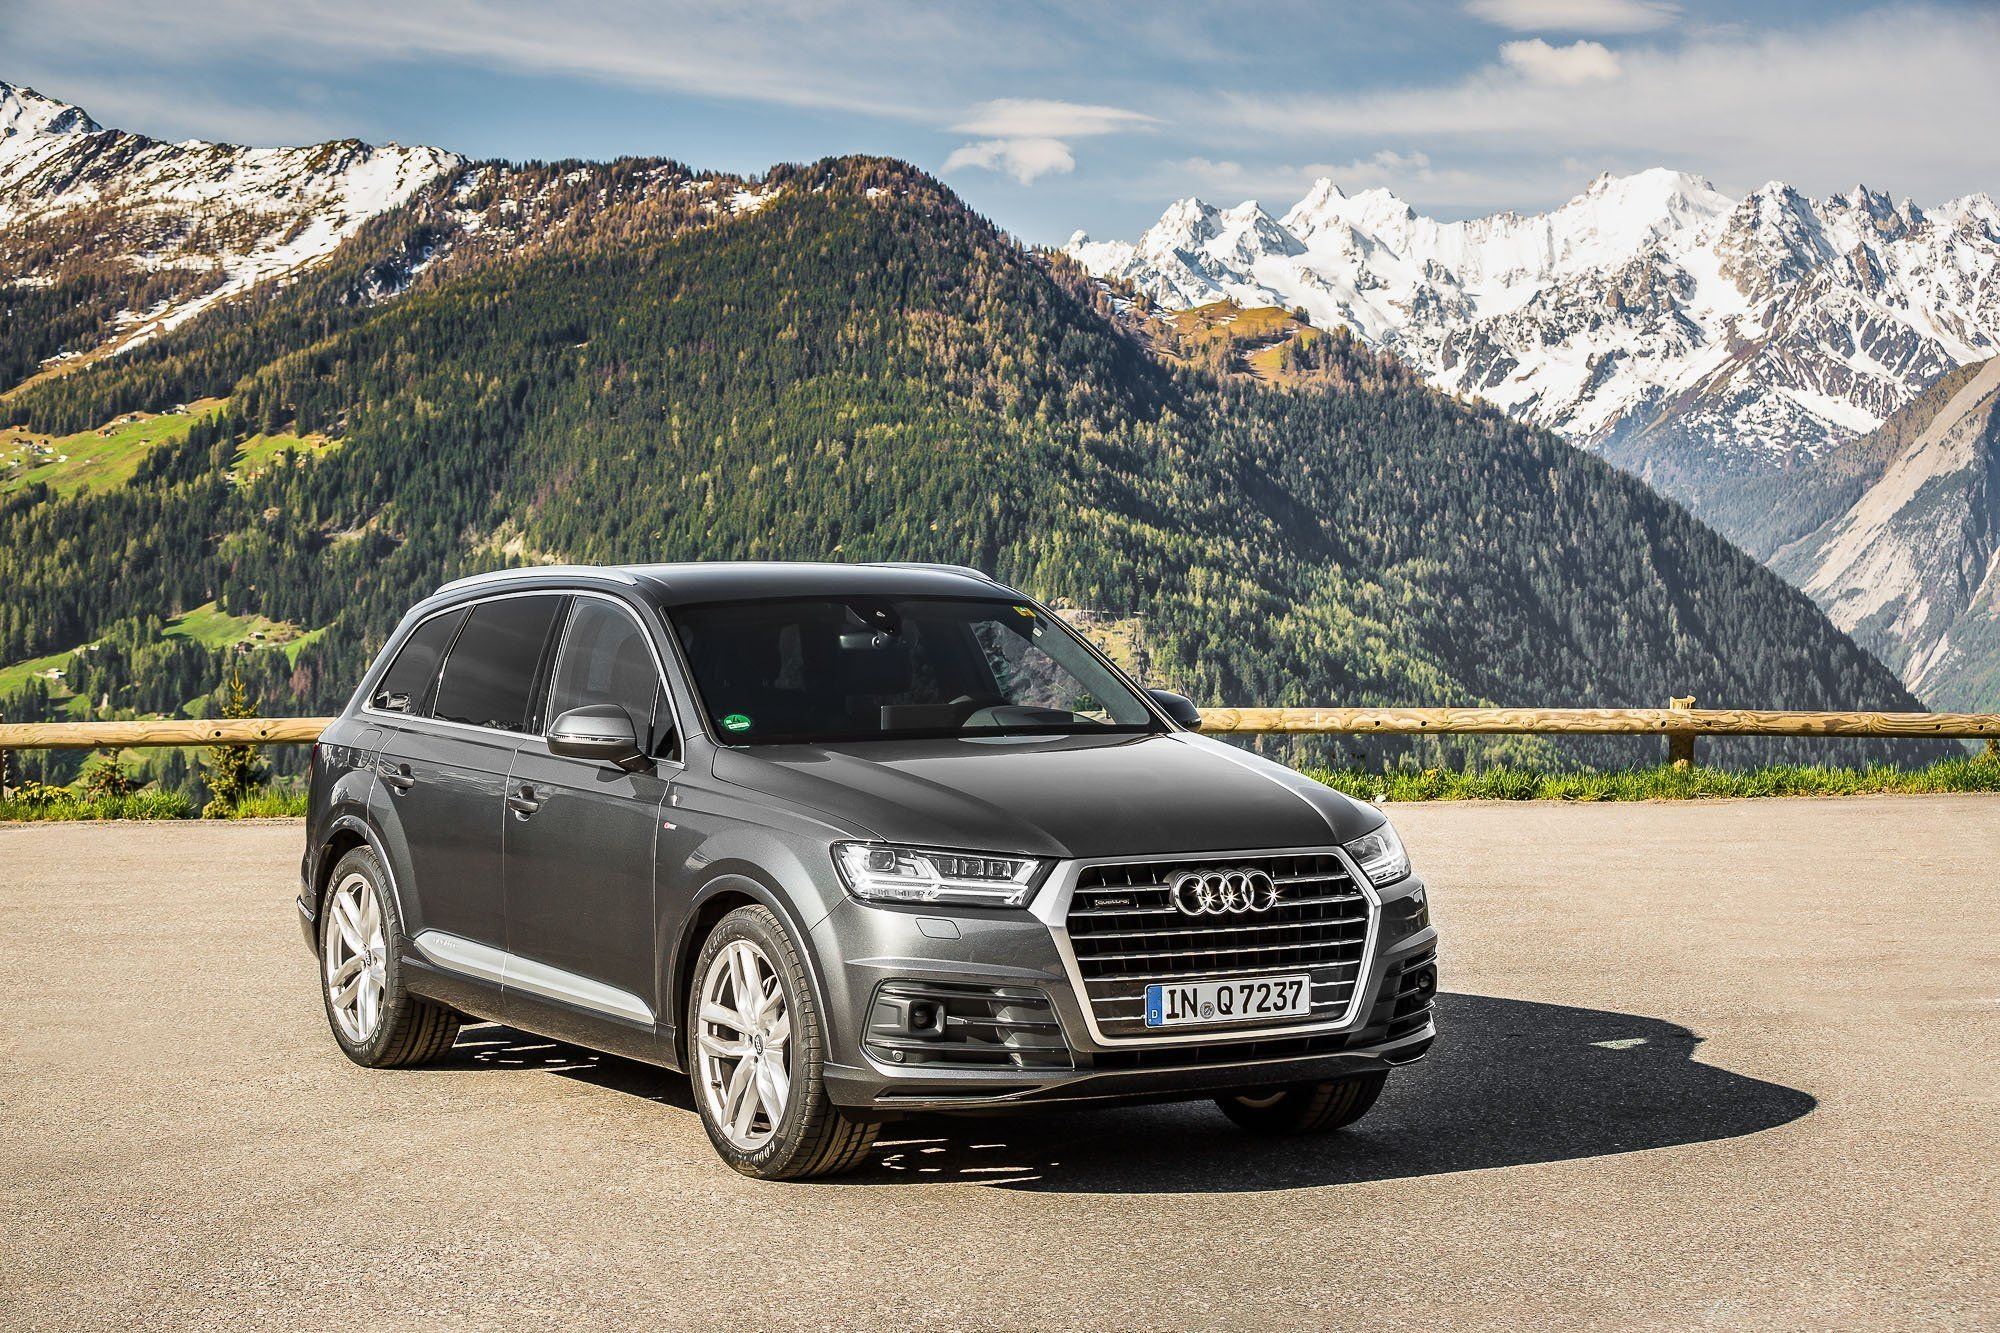 Latest Audi Car Reviews Pricing Photos And Specs Autos Post Cars Free Download